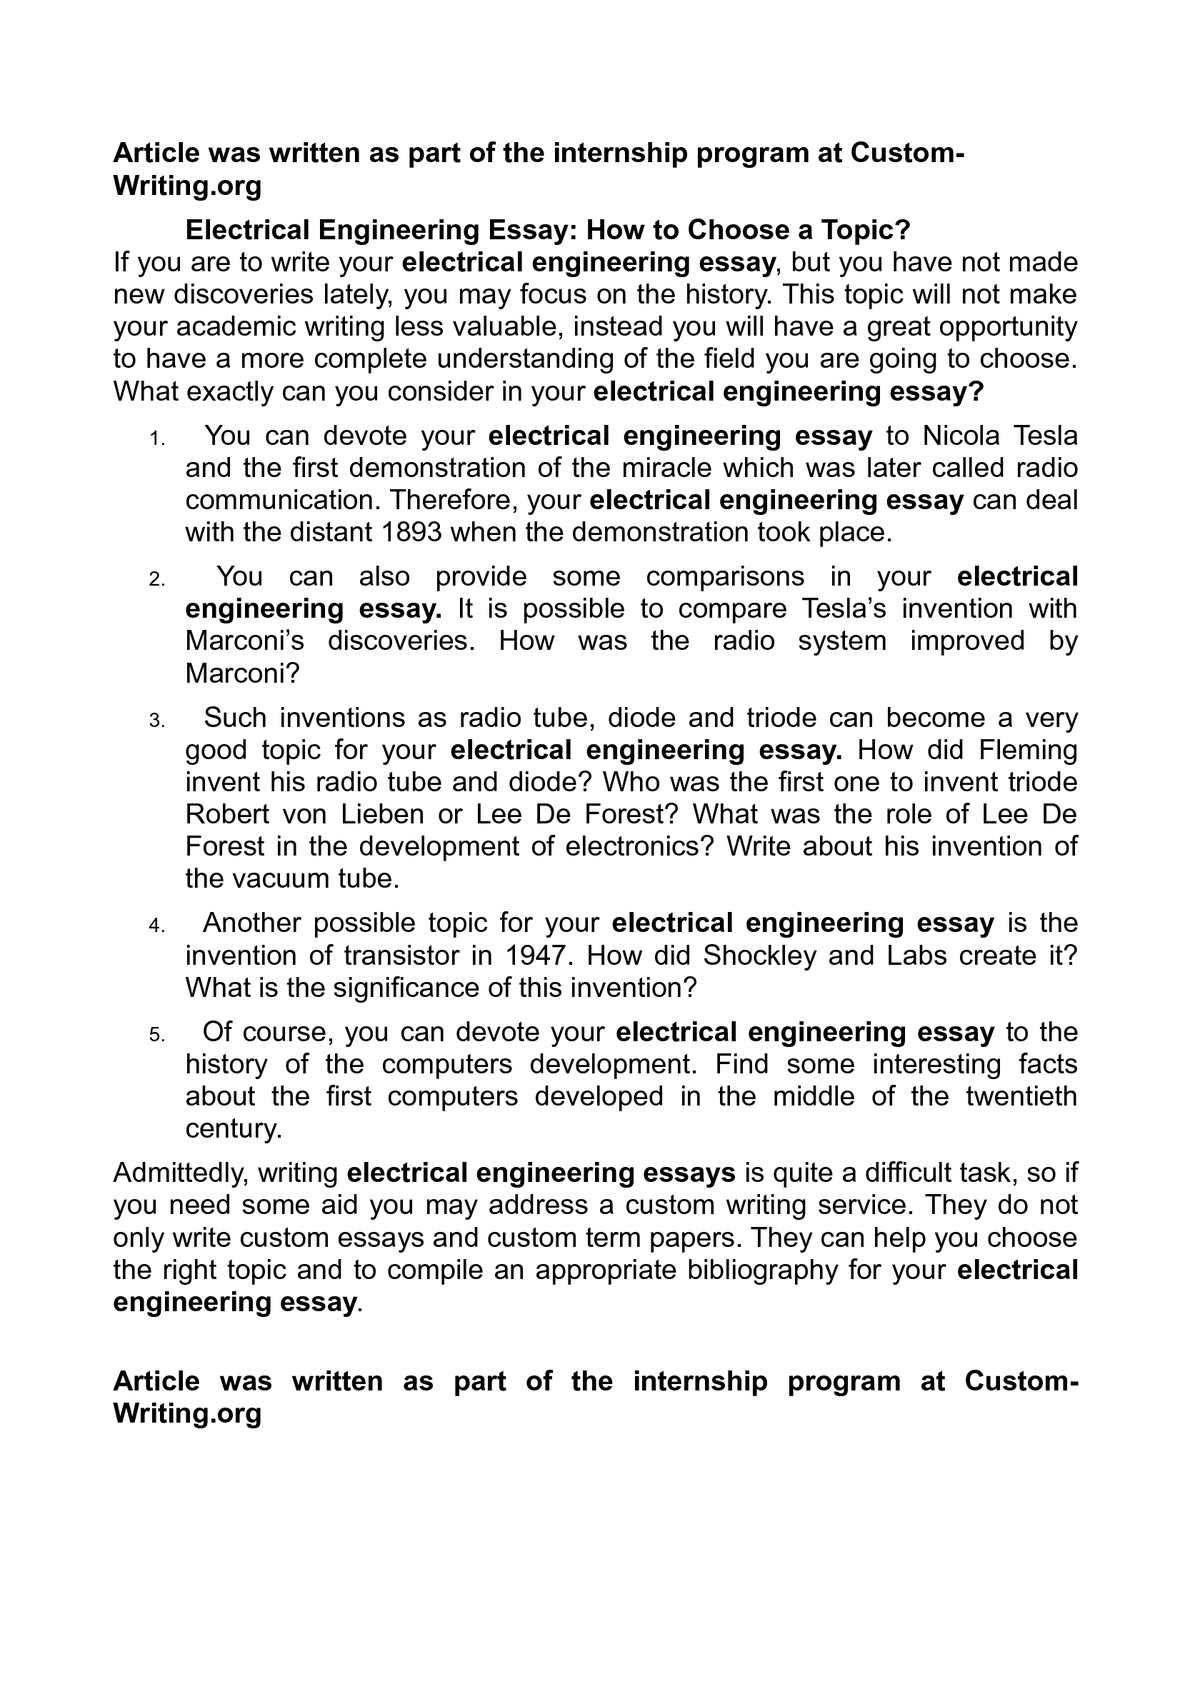 calam atilde copy o electrical engineering essay how to choose a topic